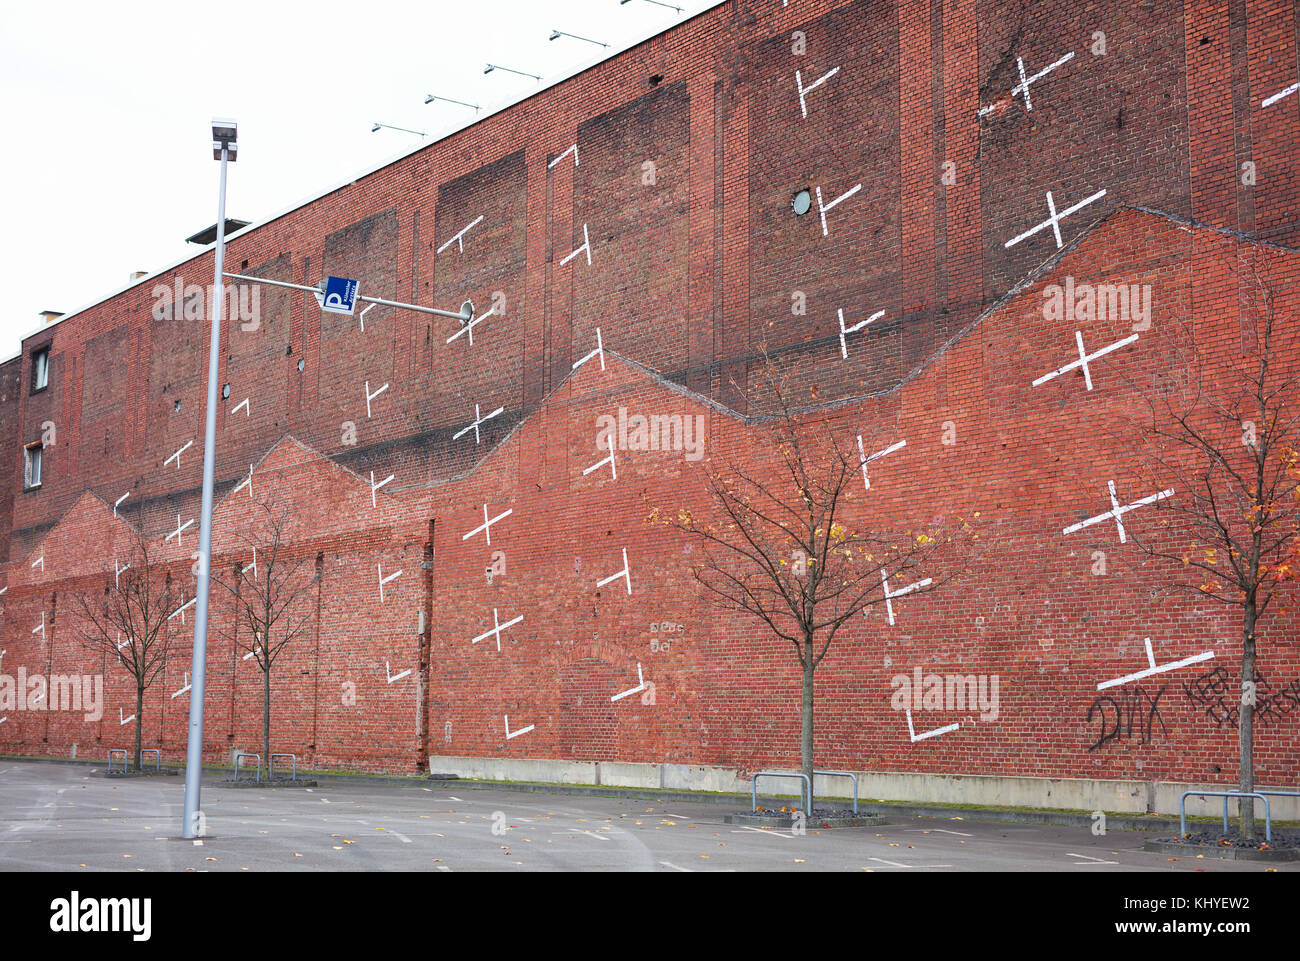 artist-parking-on-brick-wall-cologne-germany-KHYEW2.jpg